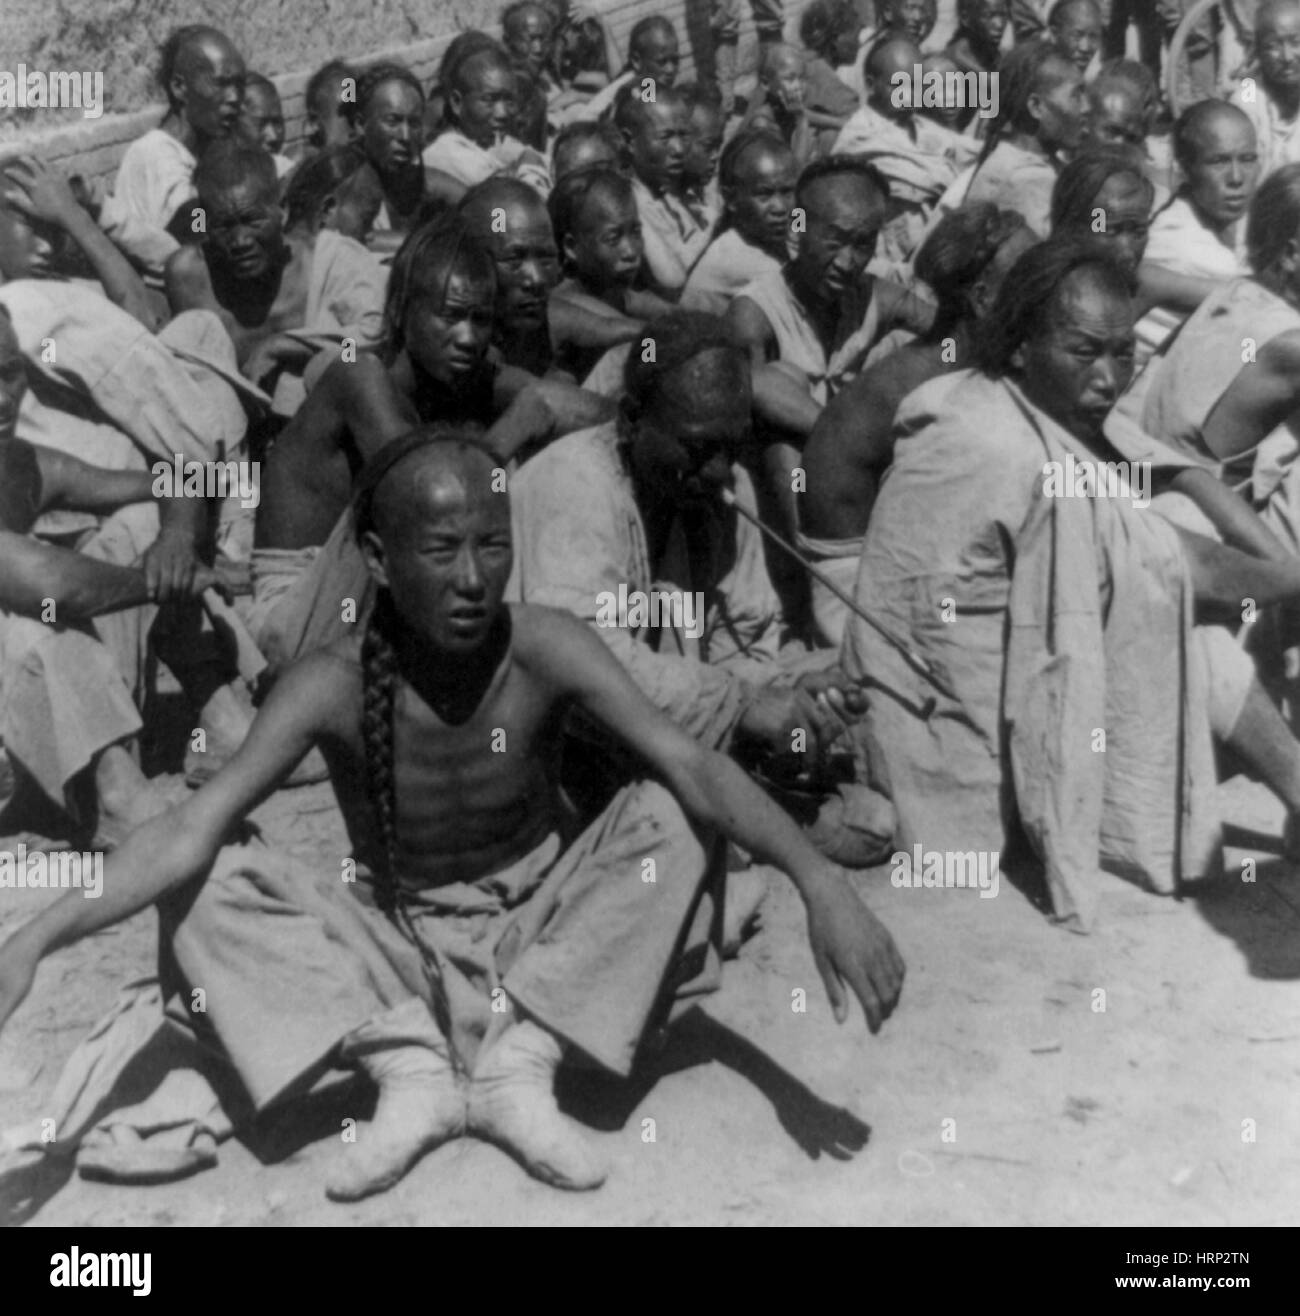 Captured Boxer Rebellion Prisoners, 1900 - Stock Image